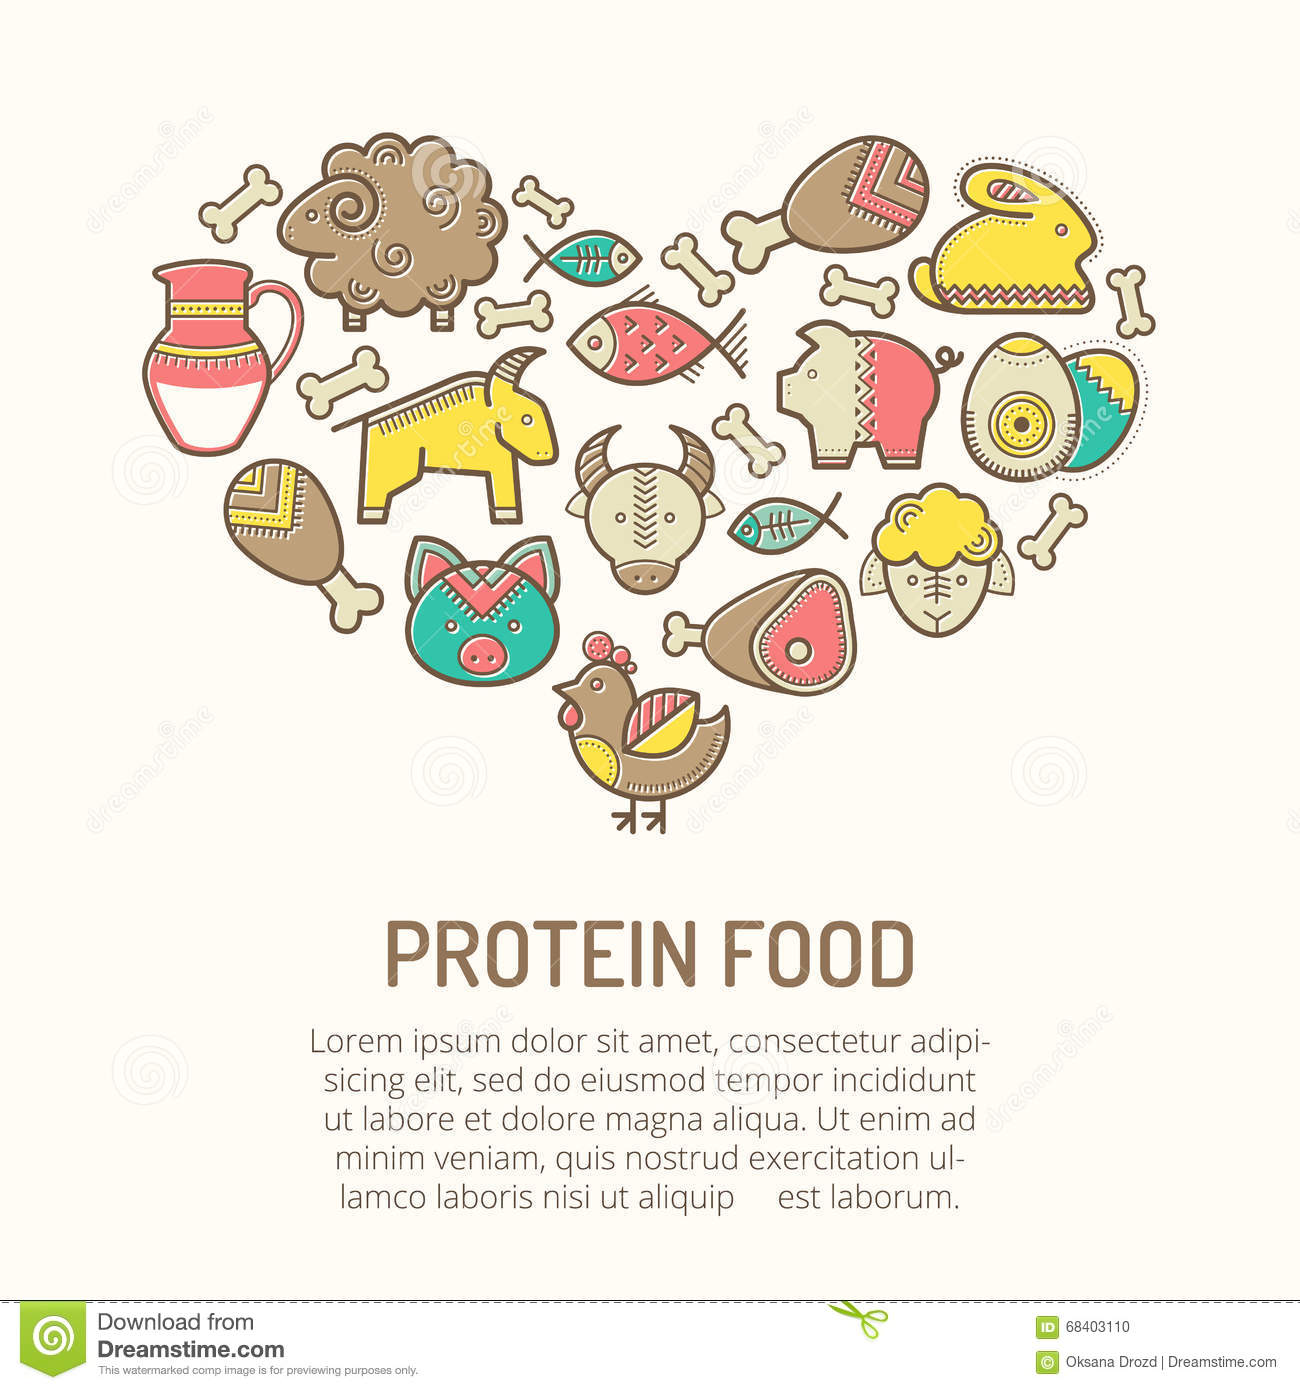 Vector illustration with outlined food icons forming a heart shape